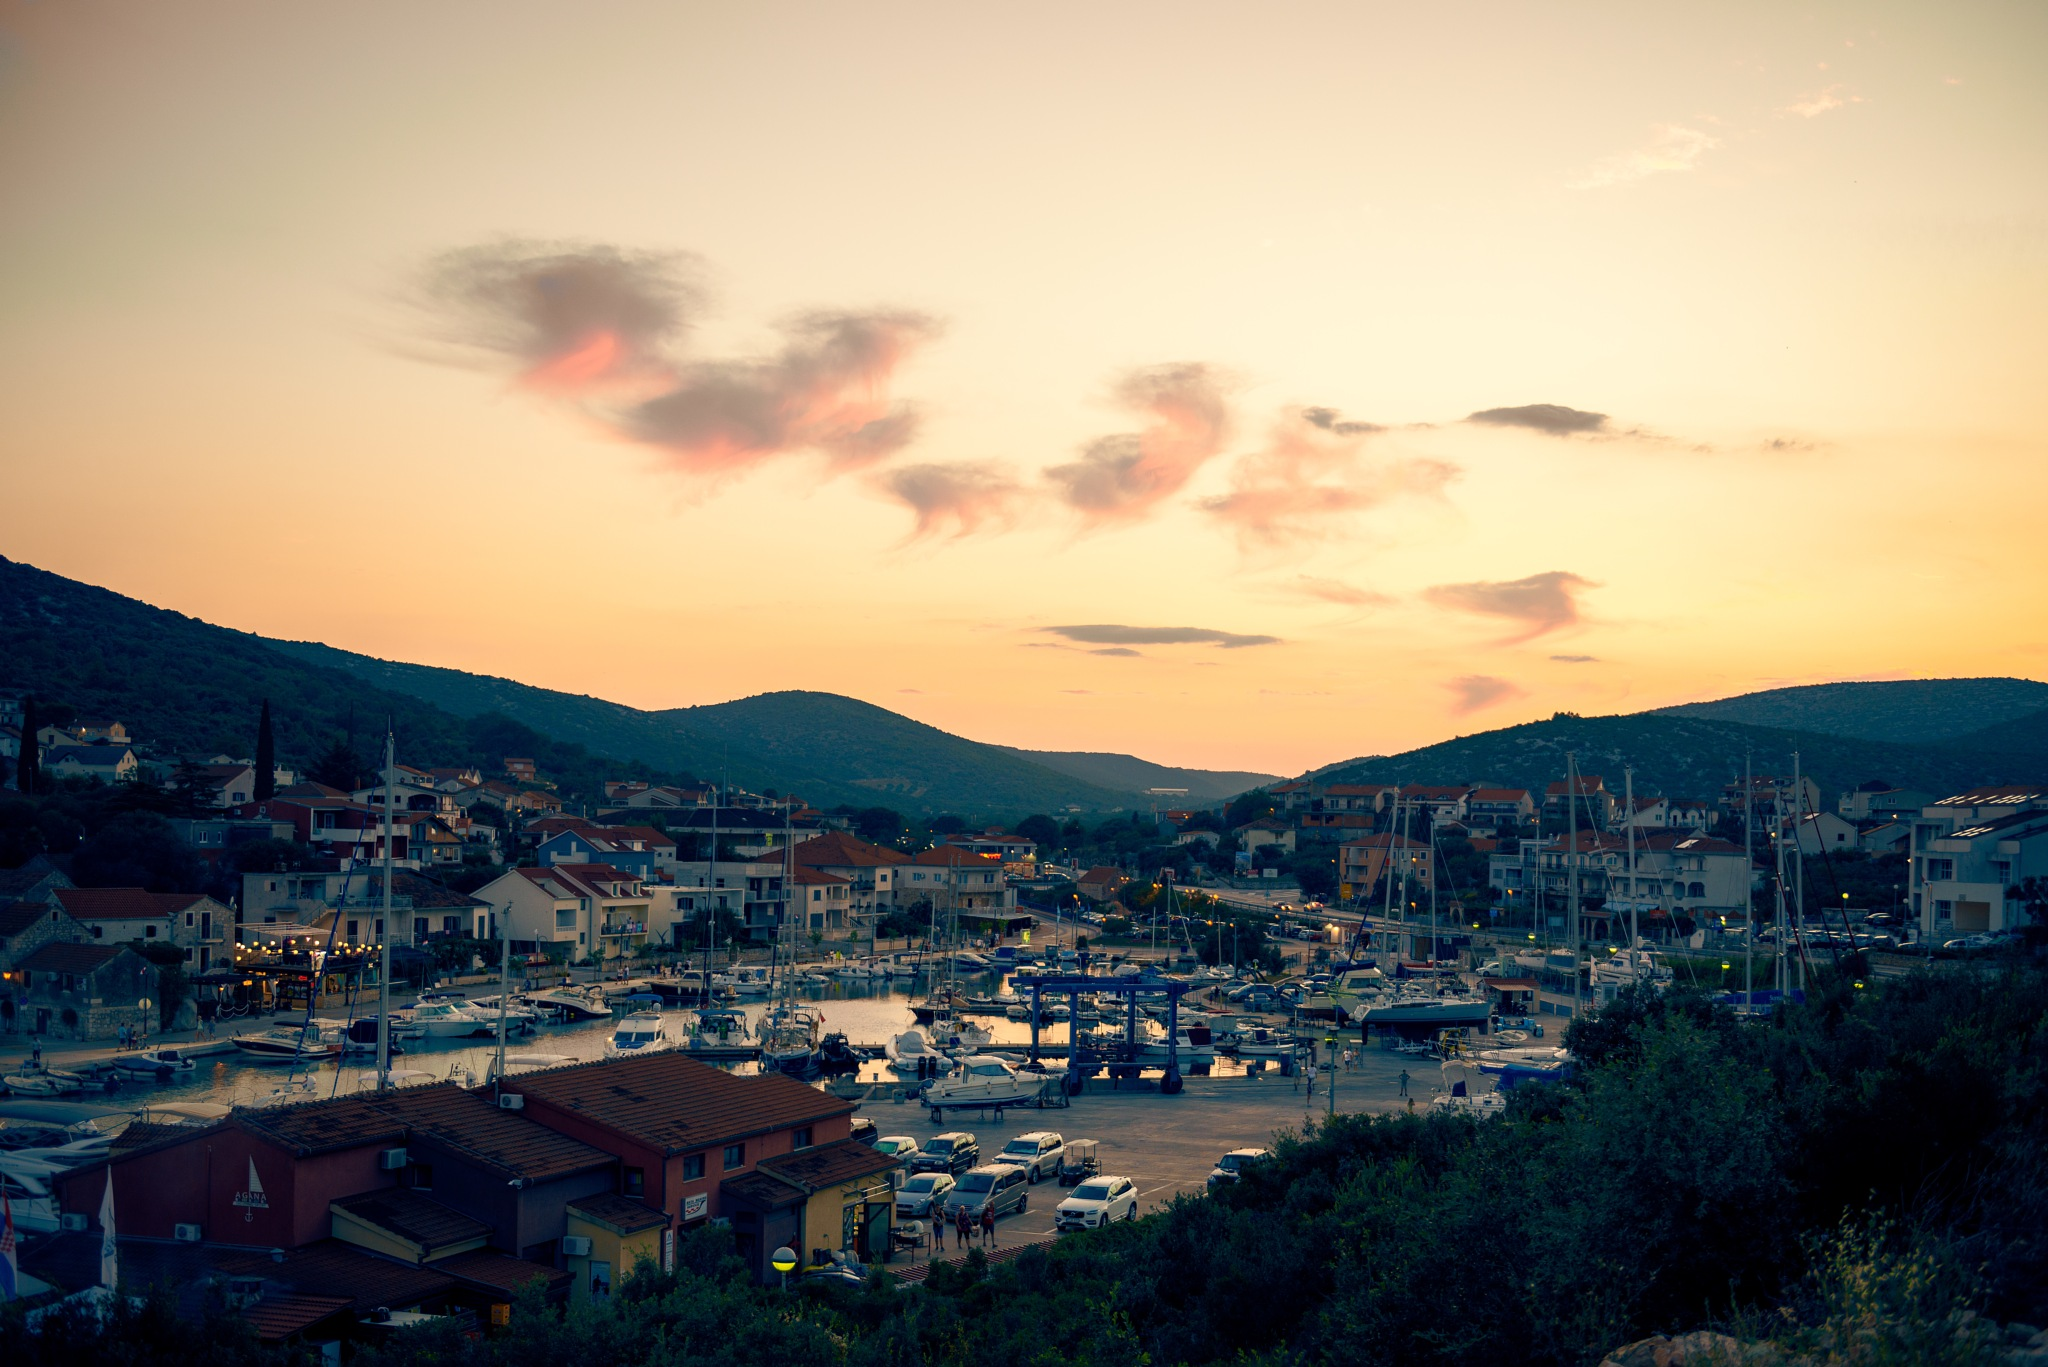 Evening shot of small village in Croatia by wow-hunter